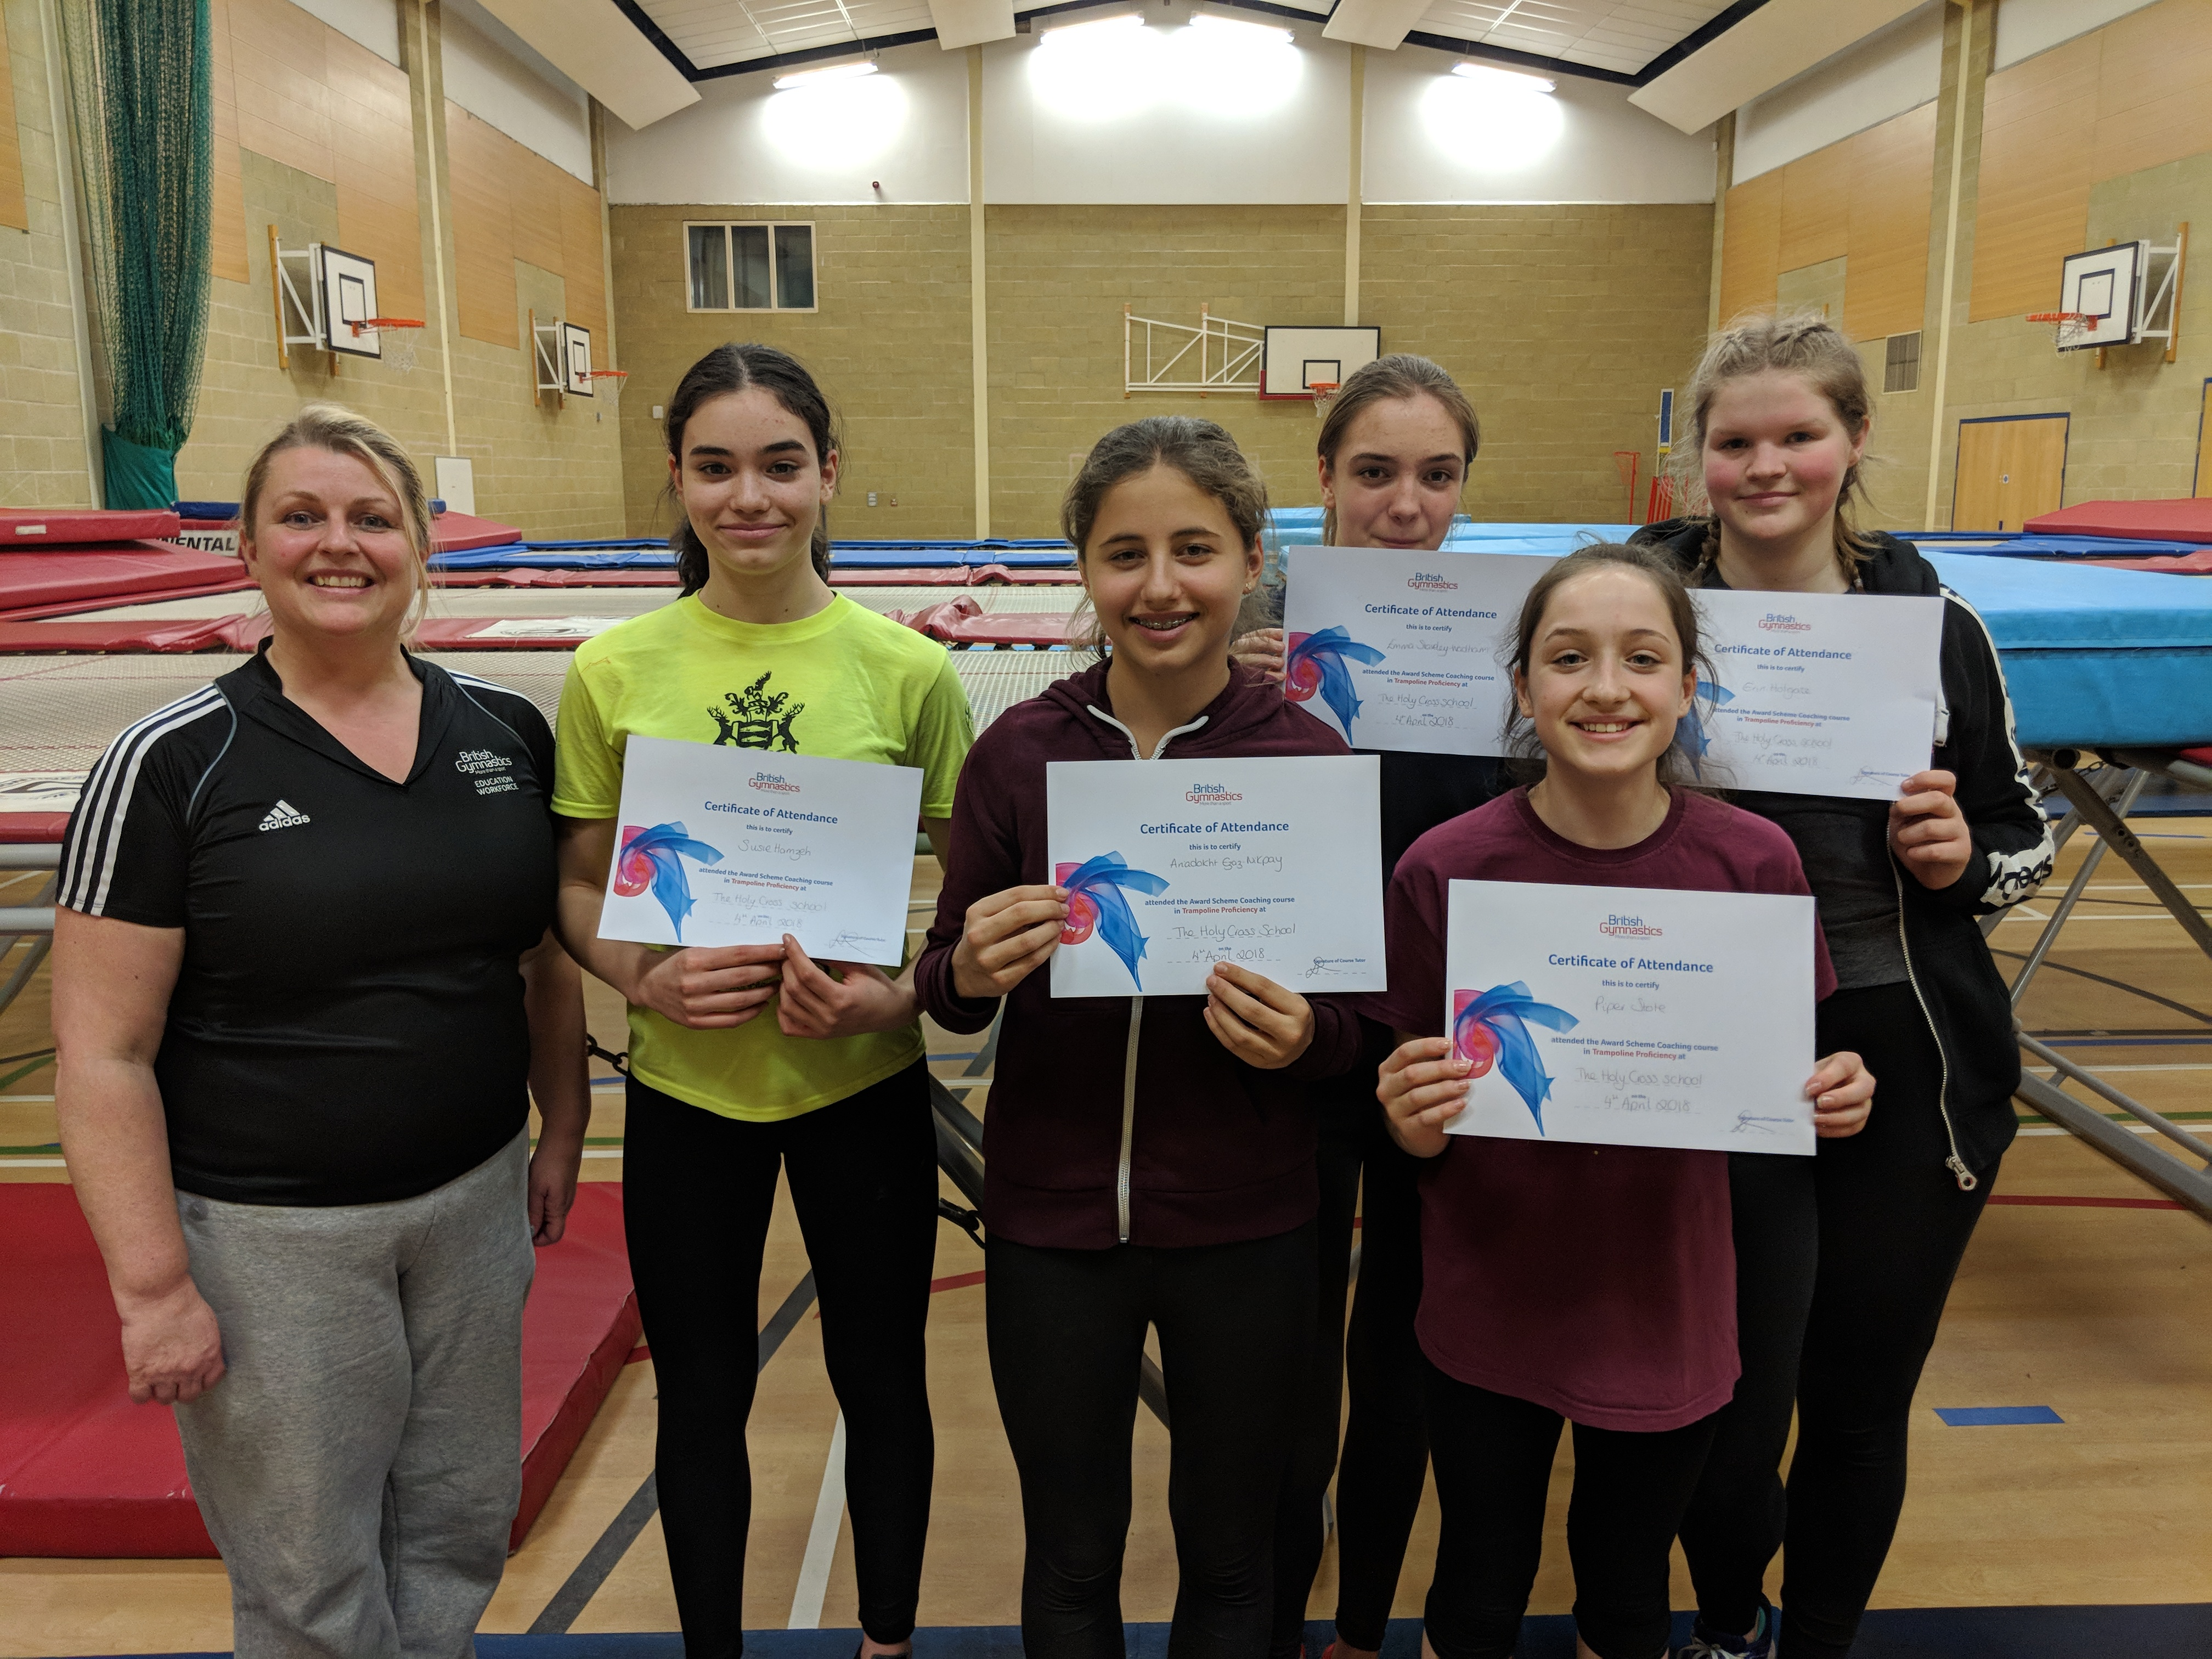 Award Scheme Coach March 2018 - Five new coaches complete their British Gymnastics training